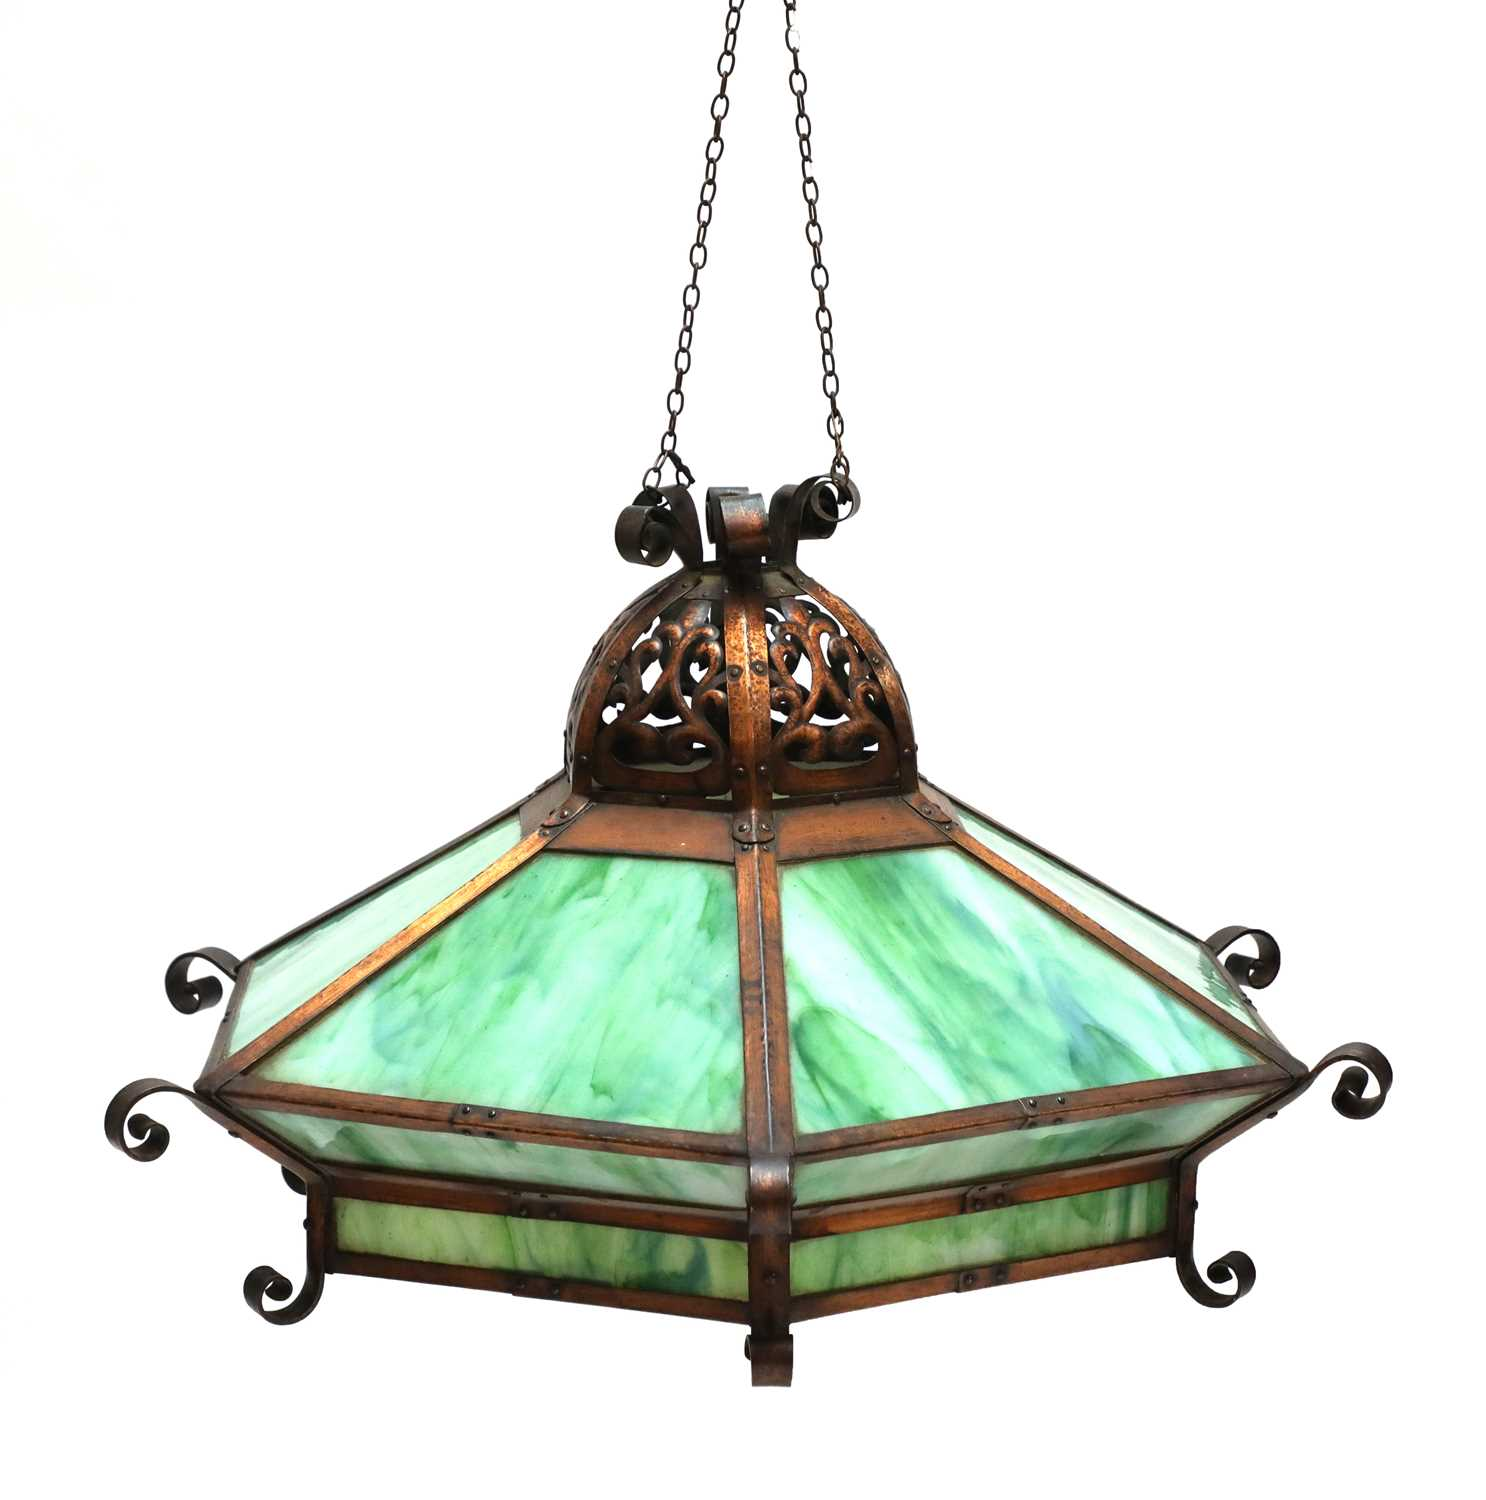 Lot 93 - An American Arts and Crafts copper ceiling light